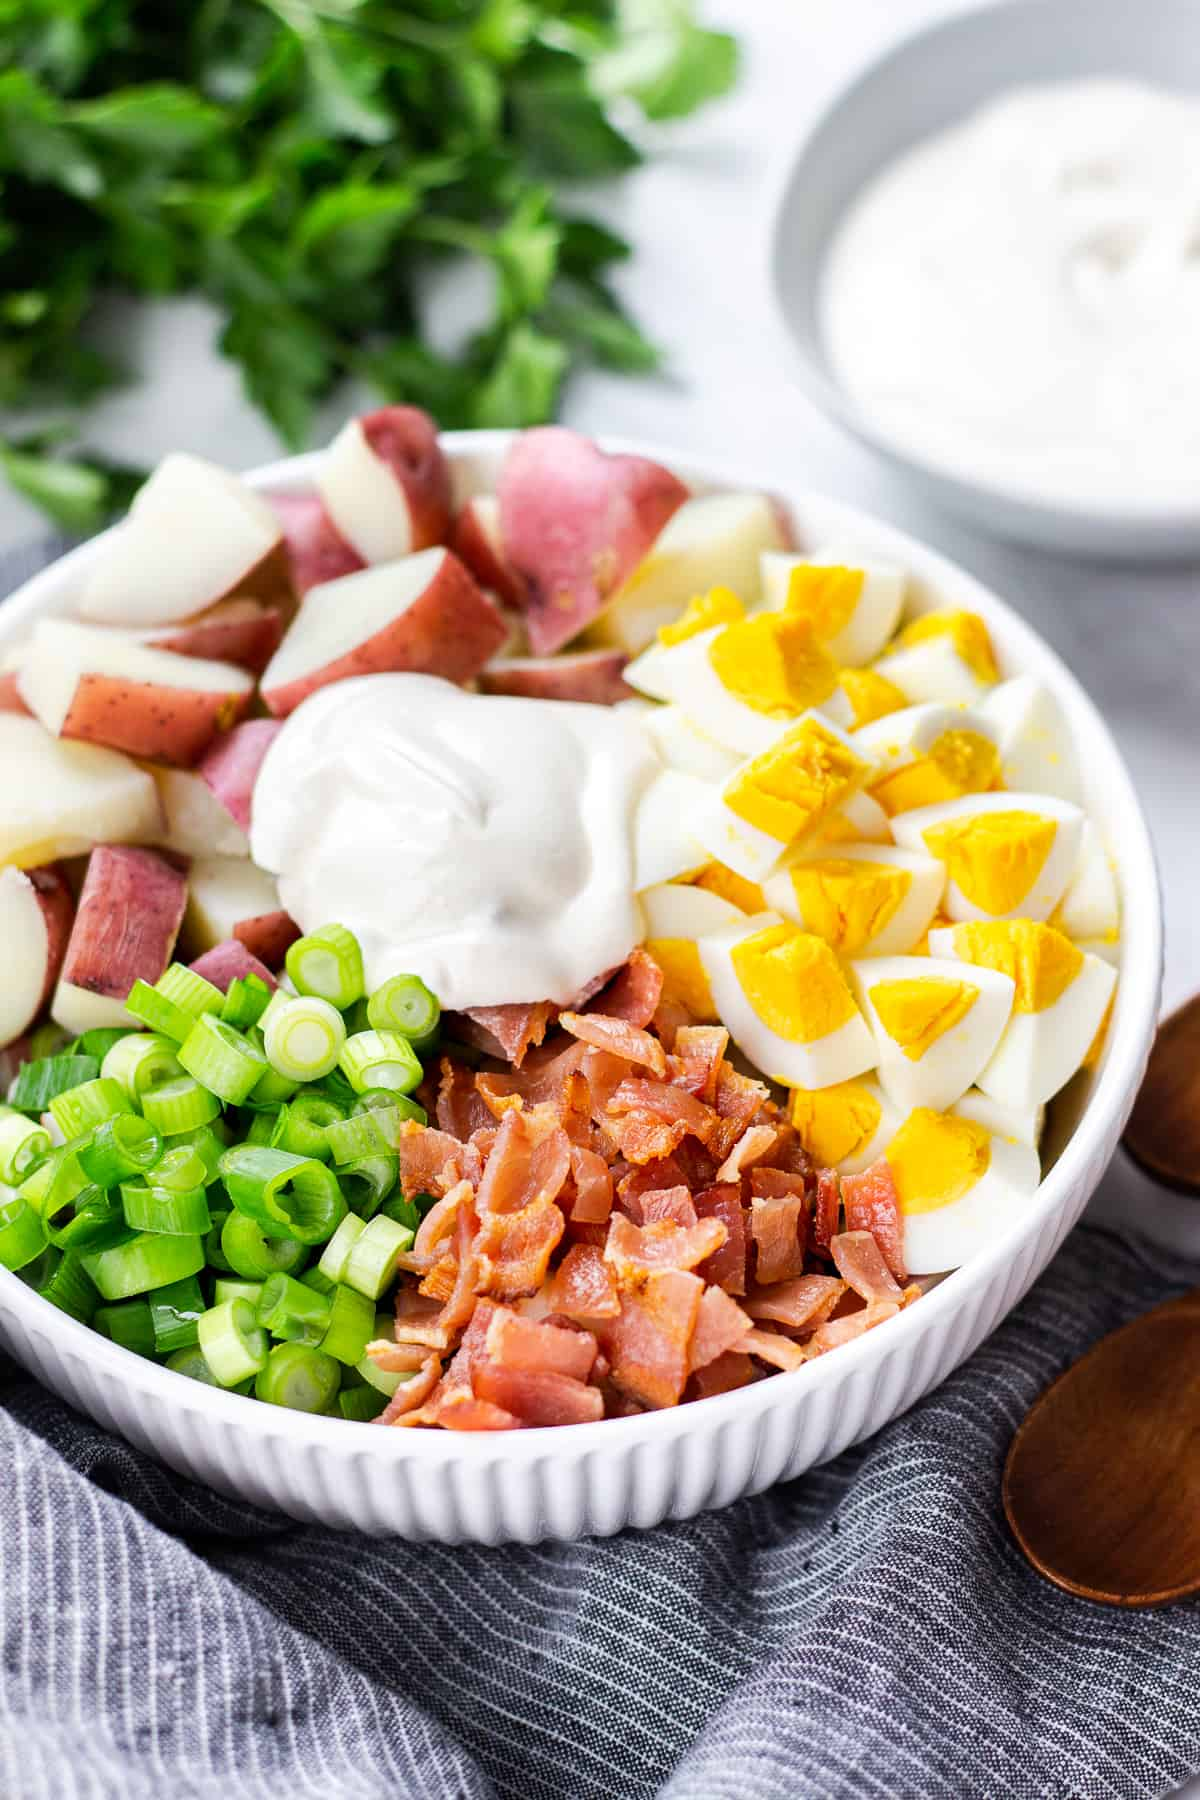 diced Red potatoes, eggs, bacon, green onion, and dressing in a white bowl.